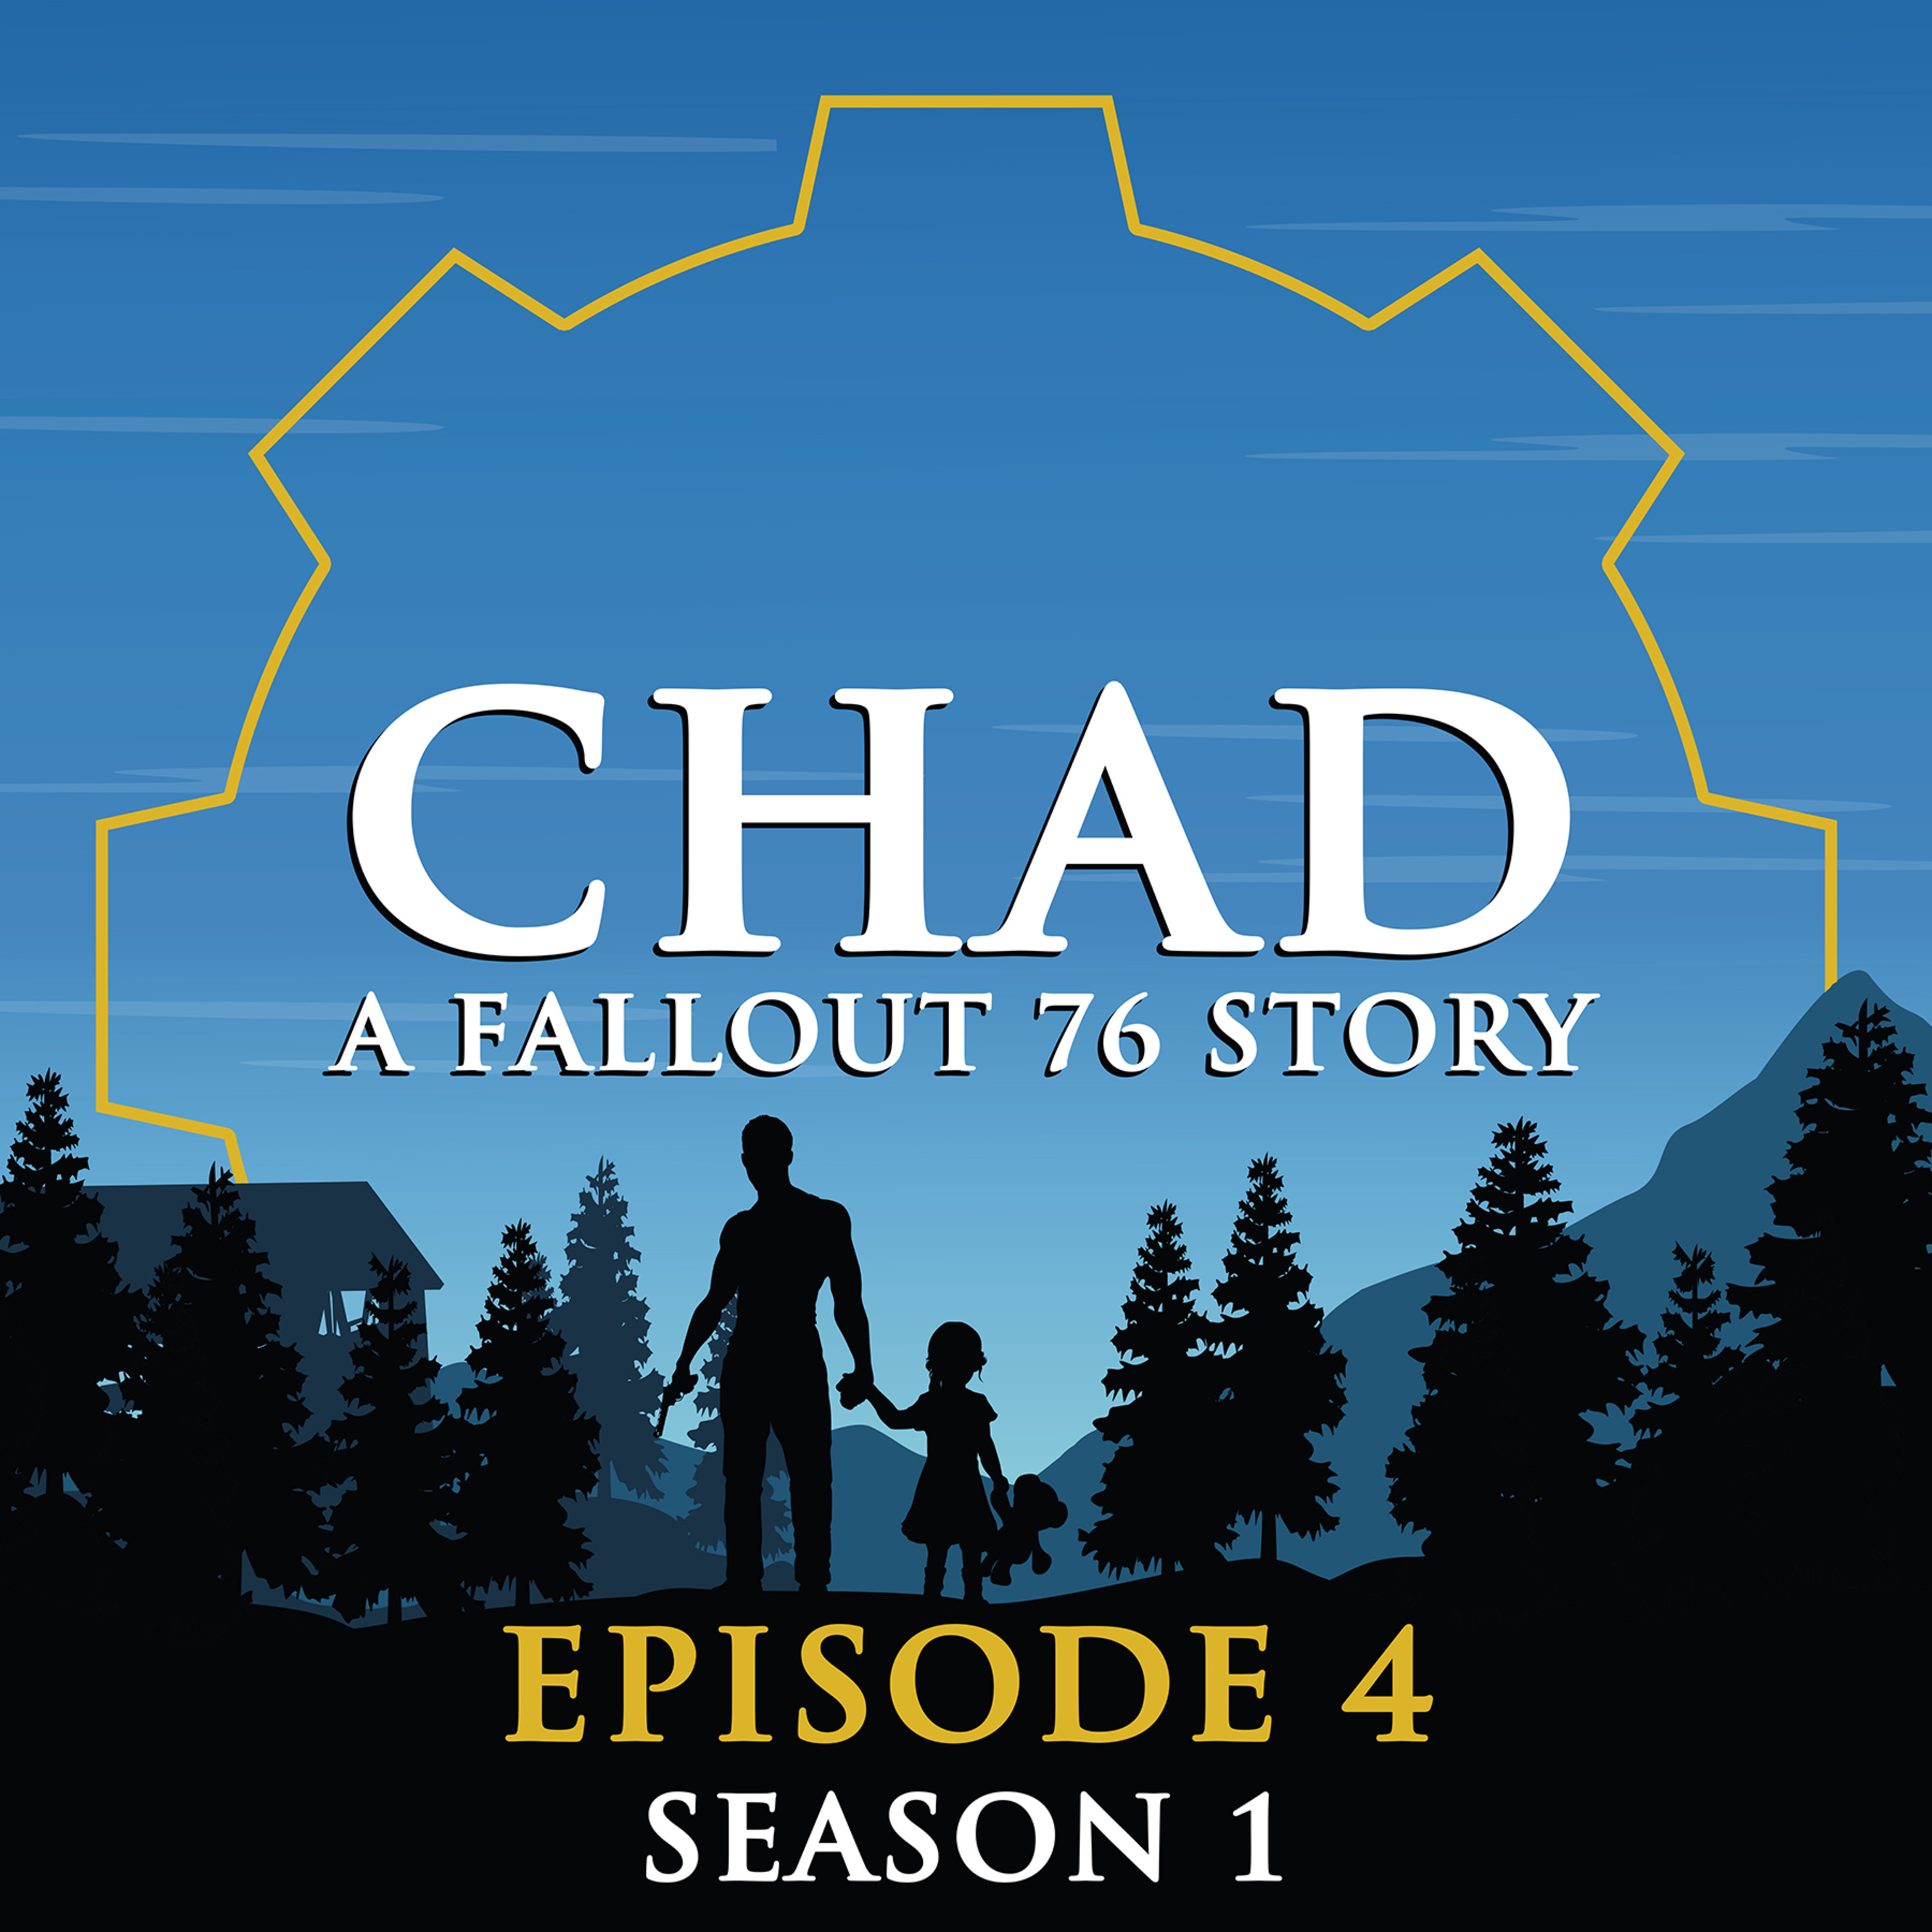 CHAD: A Fallout 76 Story ~ S1E4: The Chad, The Girl & The Grave (Extended Length)